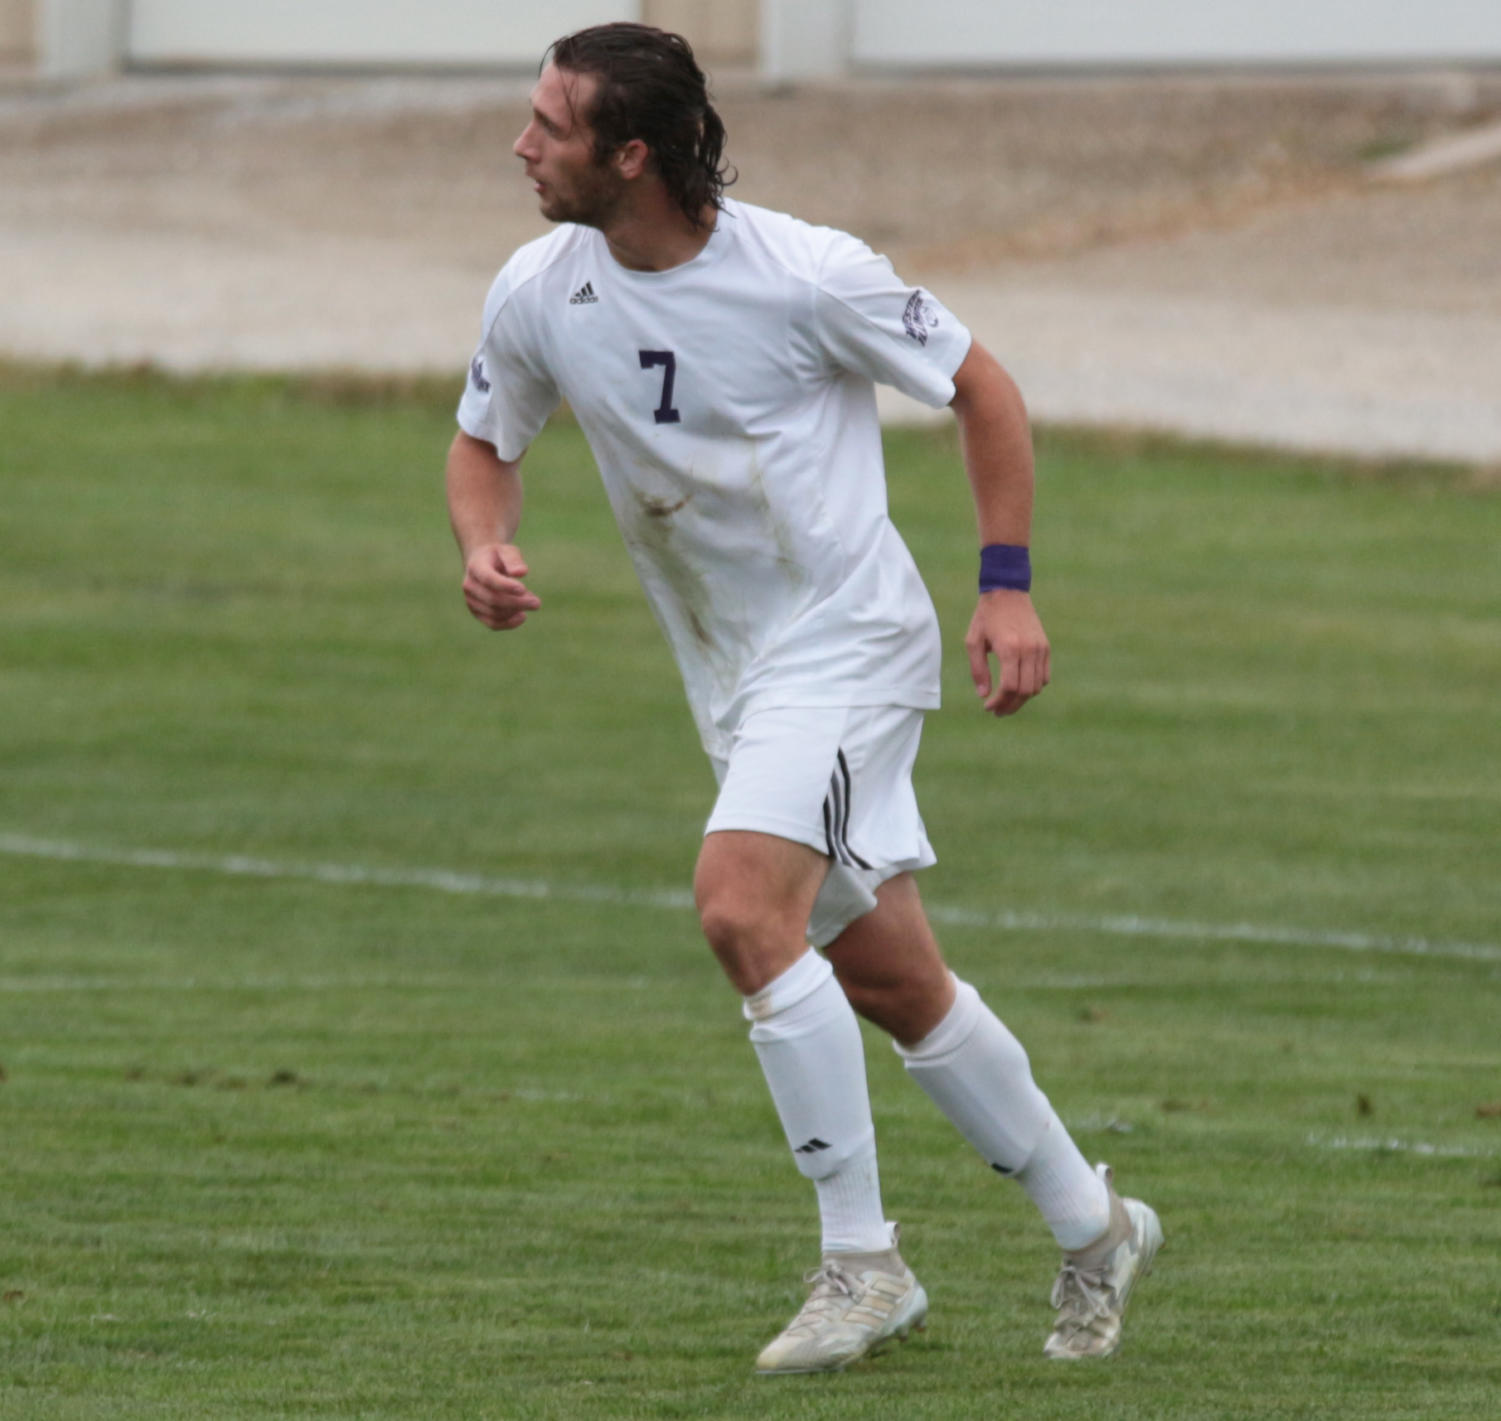 Drew Whalen midstride in a game on the exhibition field.